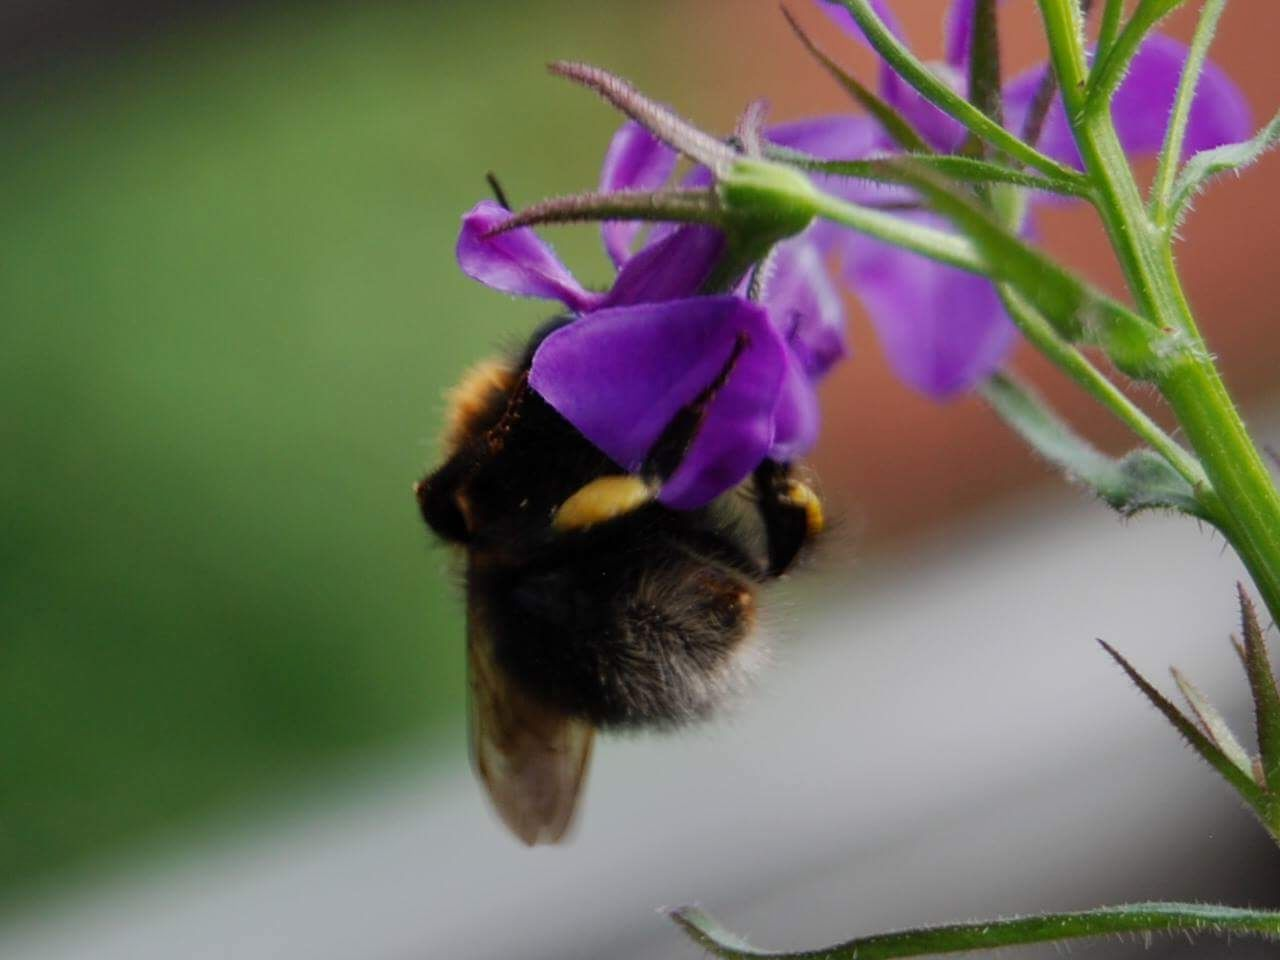 one animal, flower, animal themes, insect, bee, animals in the wild, nature, purple, fragility, petal, beauty in nature, plant, bumblebee, freshness, growth, wildlife, animal wildlife, no people, honey bee, pollination, day, close-up, buzzing, flower head, outdoors